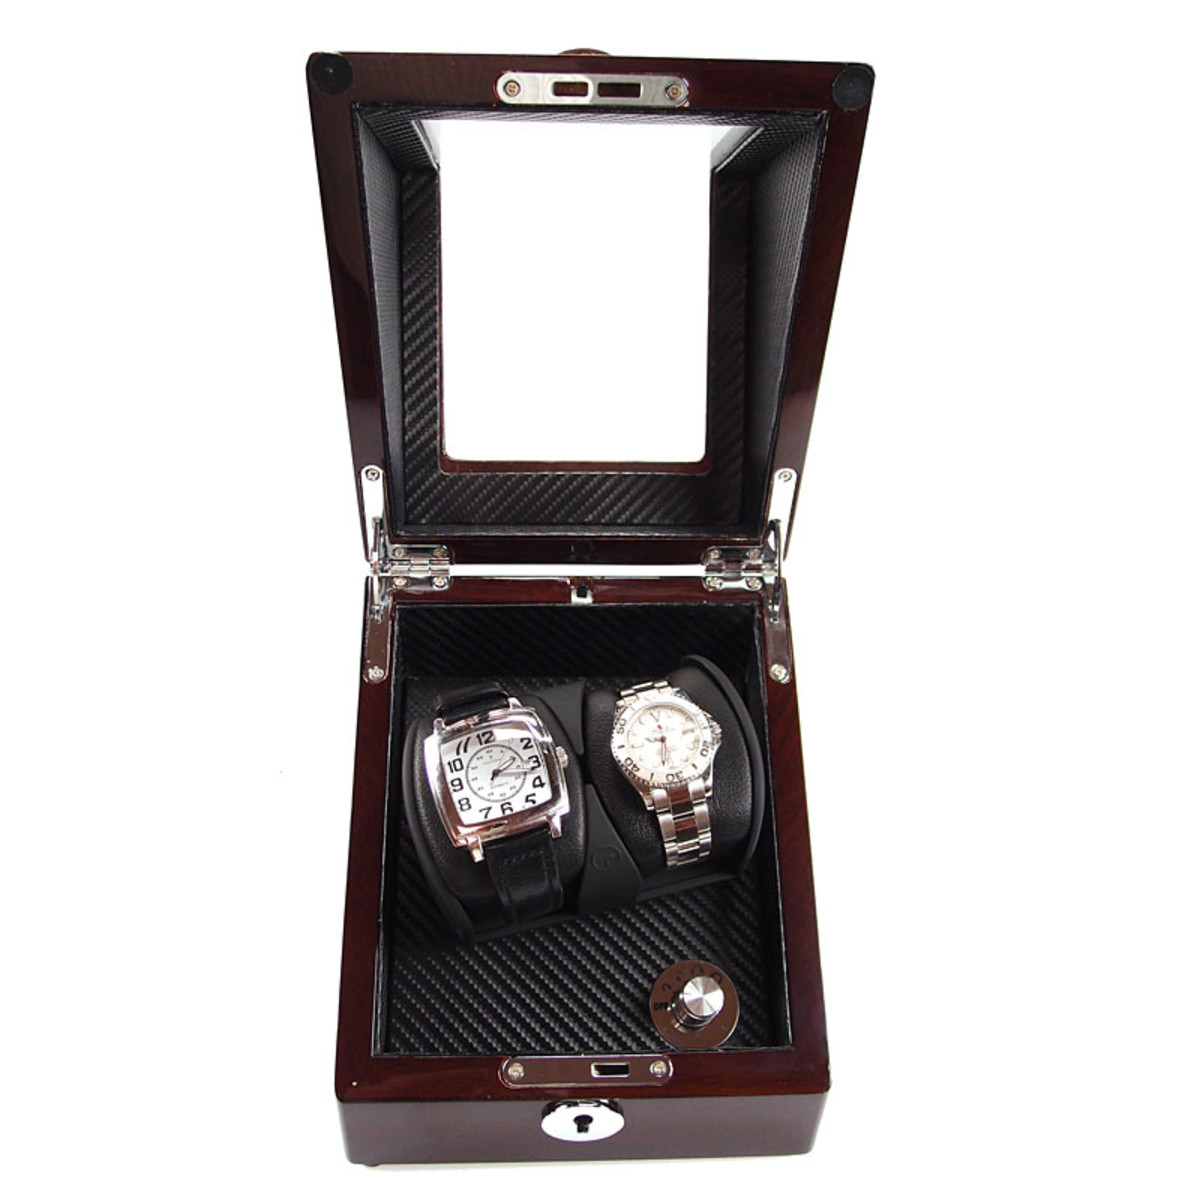 Care for your watch with a watch winder